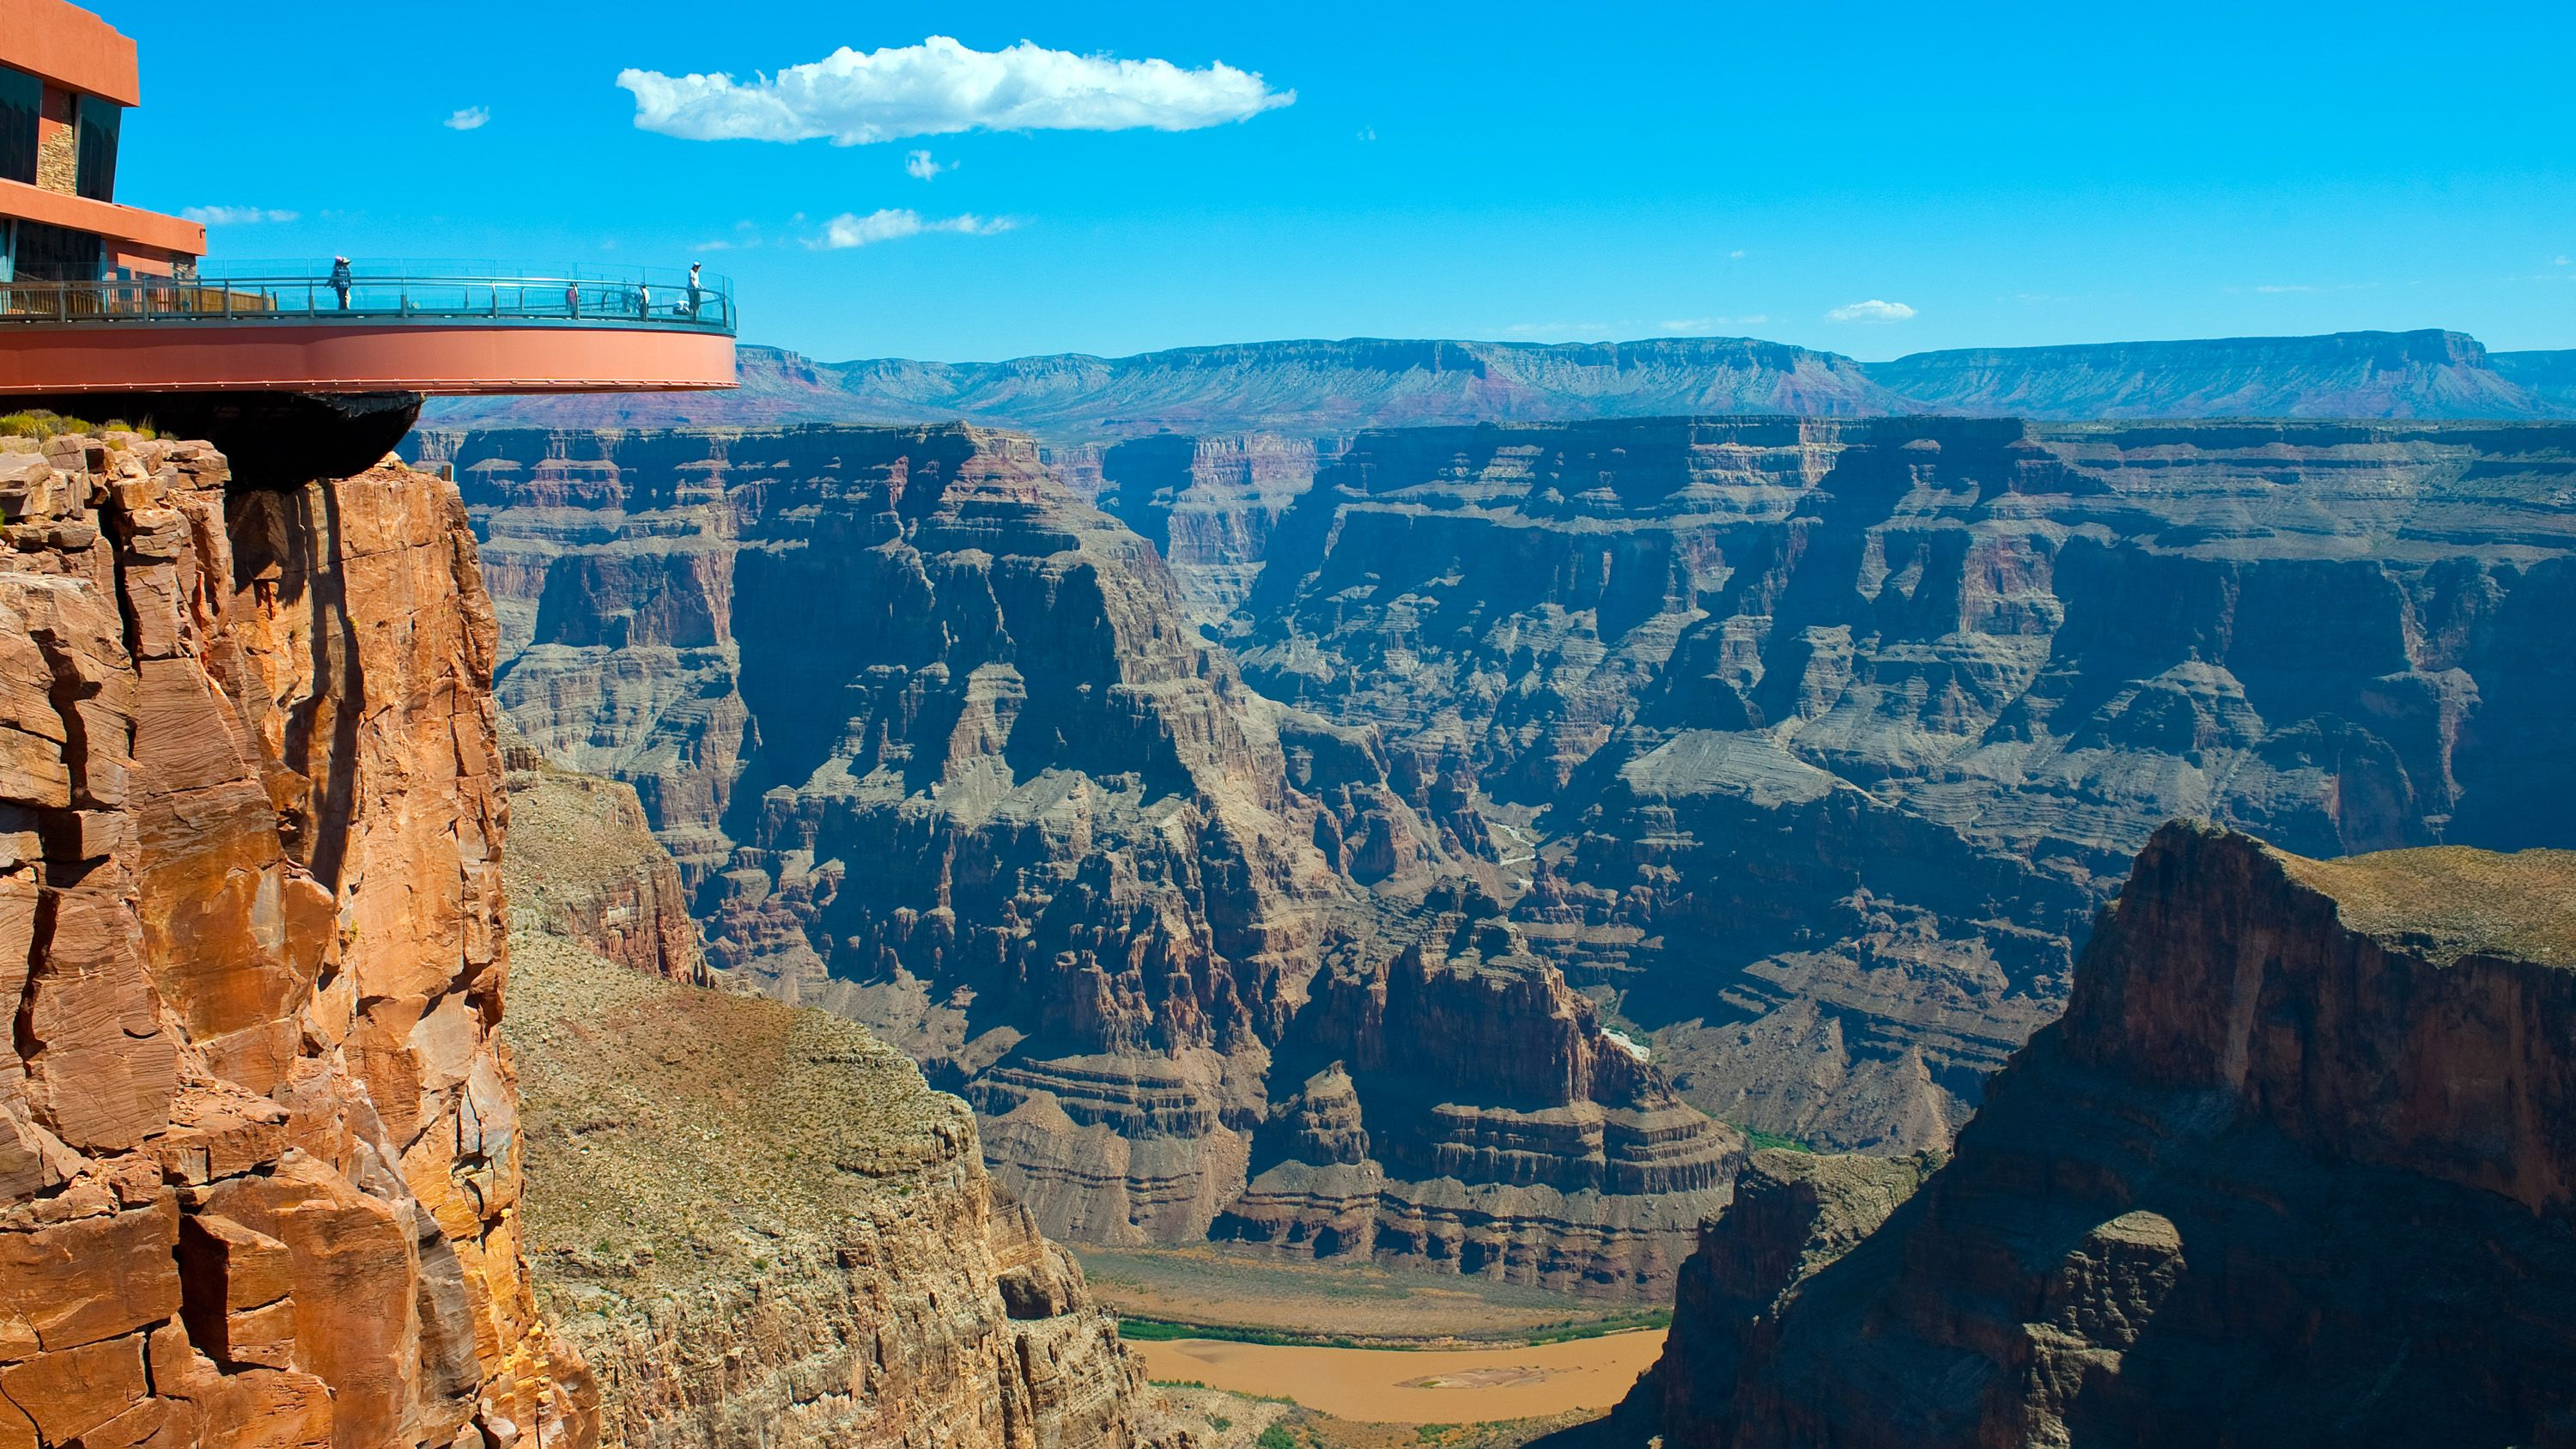 Panoramic view of the Observation deck of the Skywalk Odyssey and the grand canyon